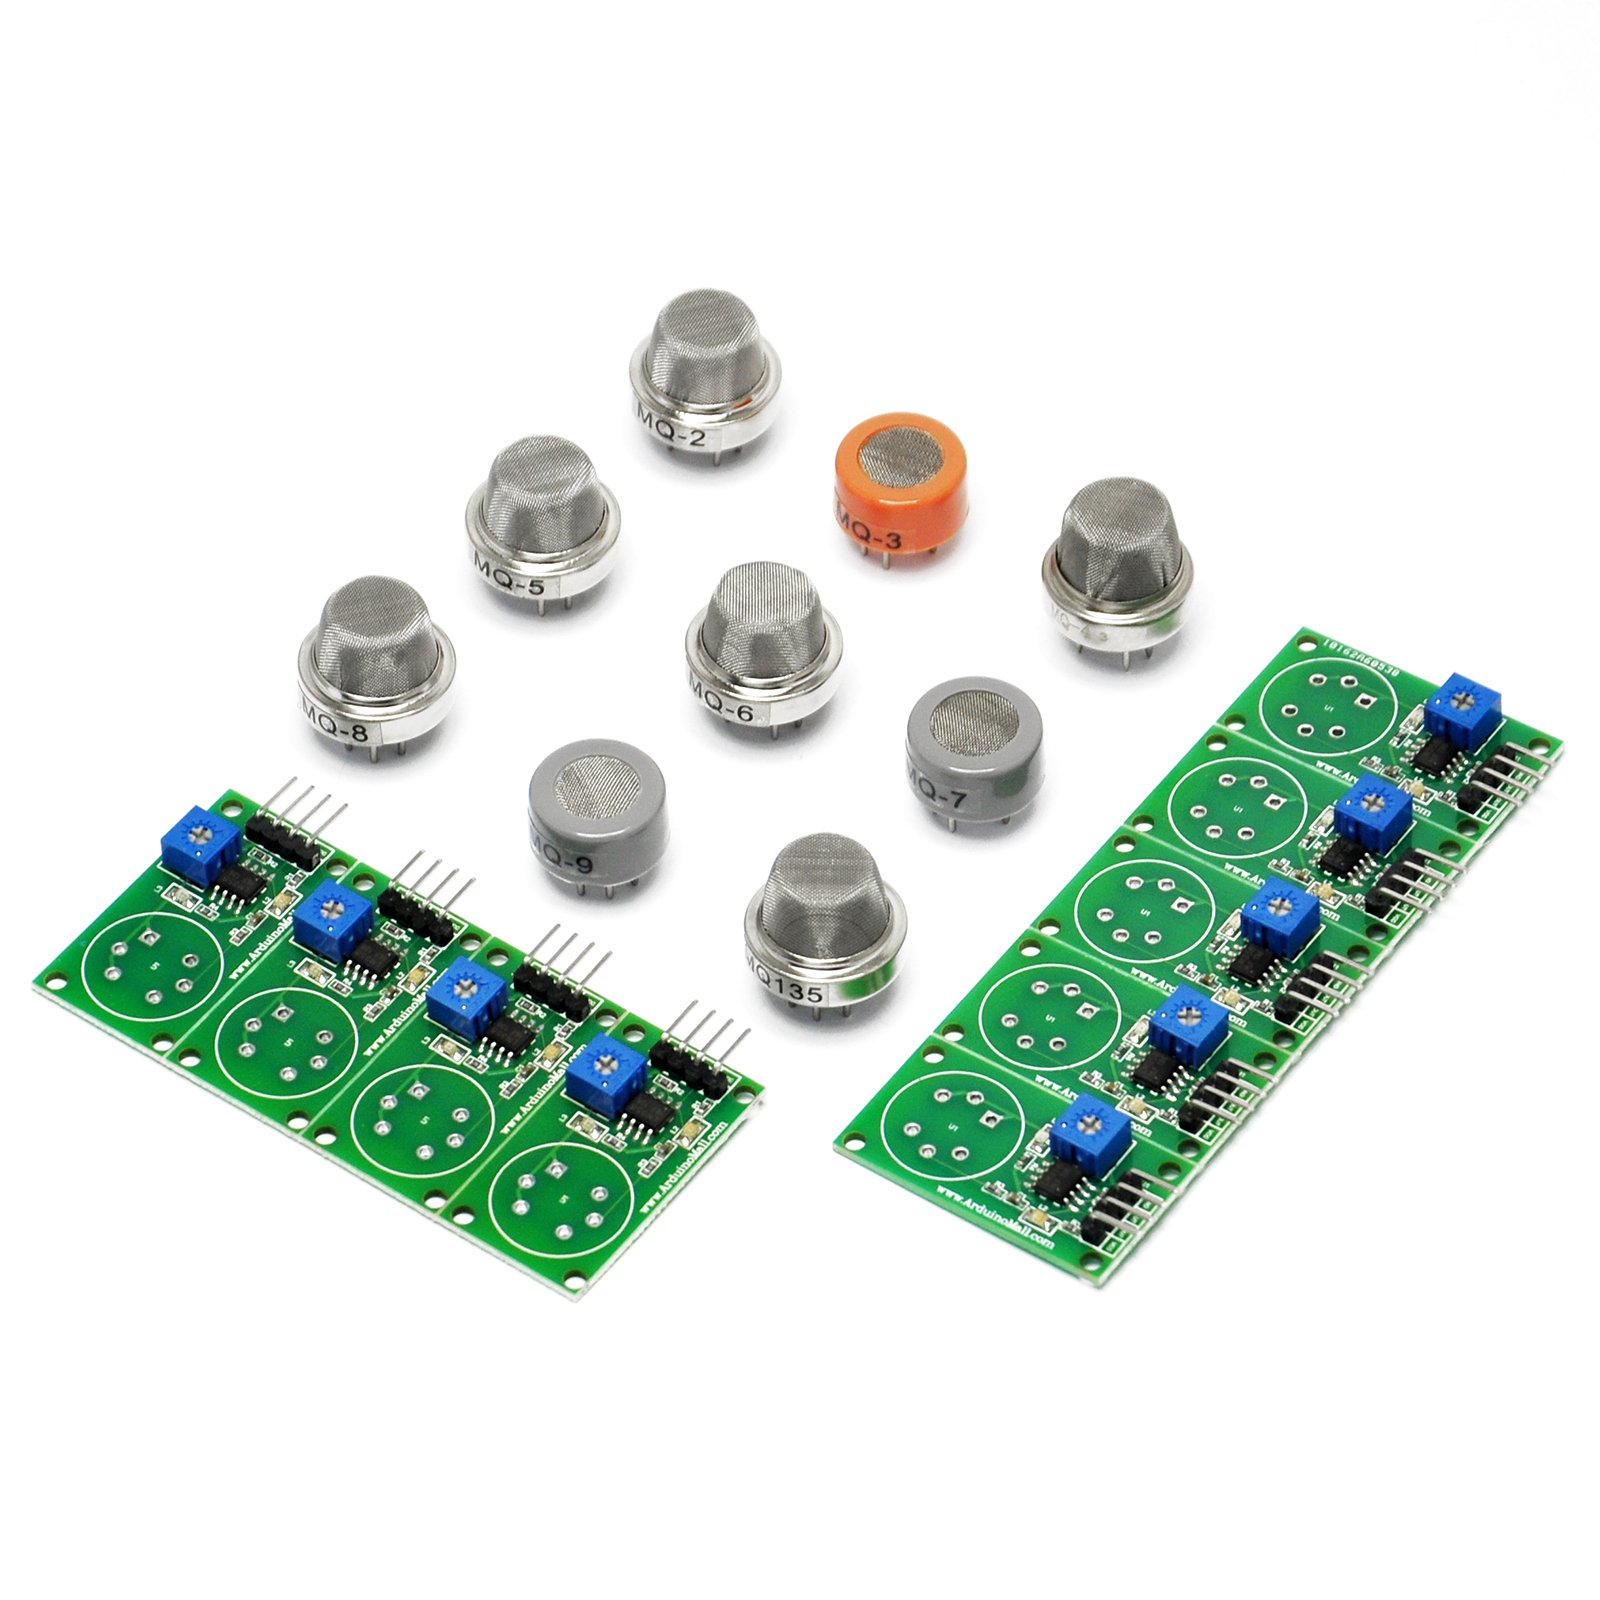 Cheap Arduino Color Sensor Find Deals On Line Sensing Tutorial Tsc230 Tsc3200 Circuit Get Quotations Gikfun Mq2 Mq3 Mq4 Mq5 Mq6 Mq7 Mq8 Mq9 Mq135 Each 1pc Diy For